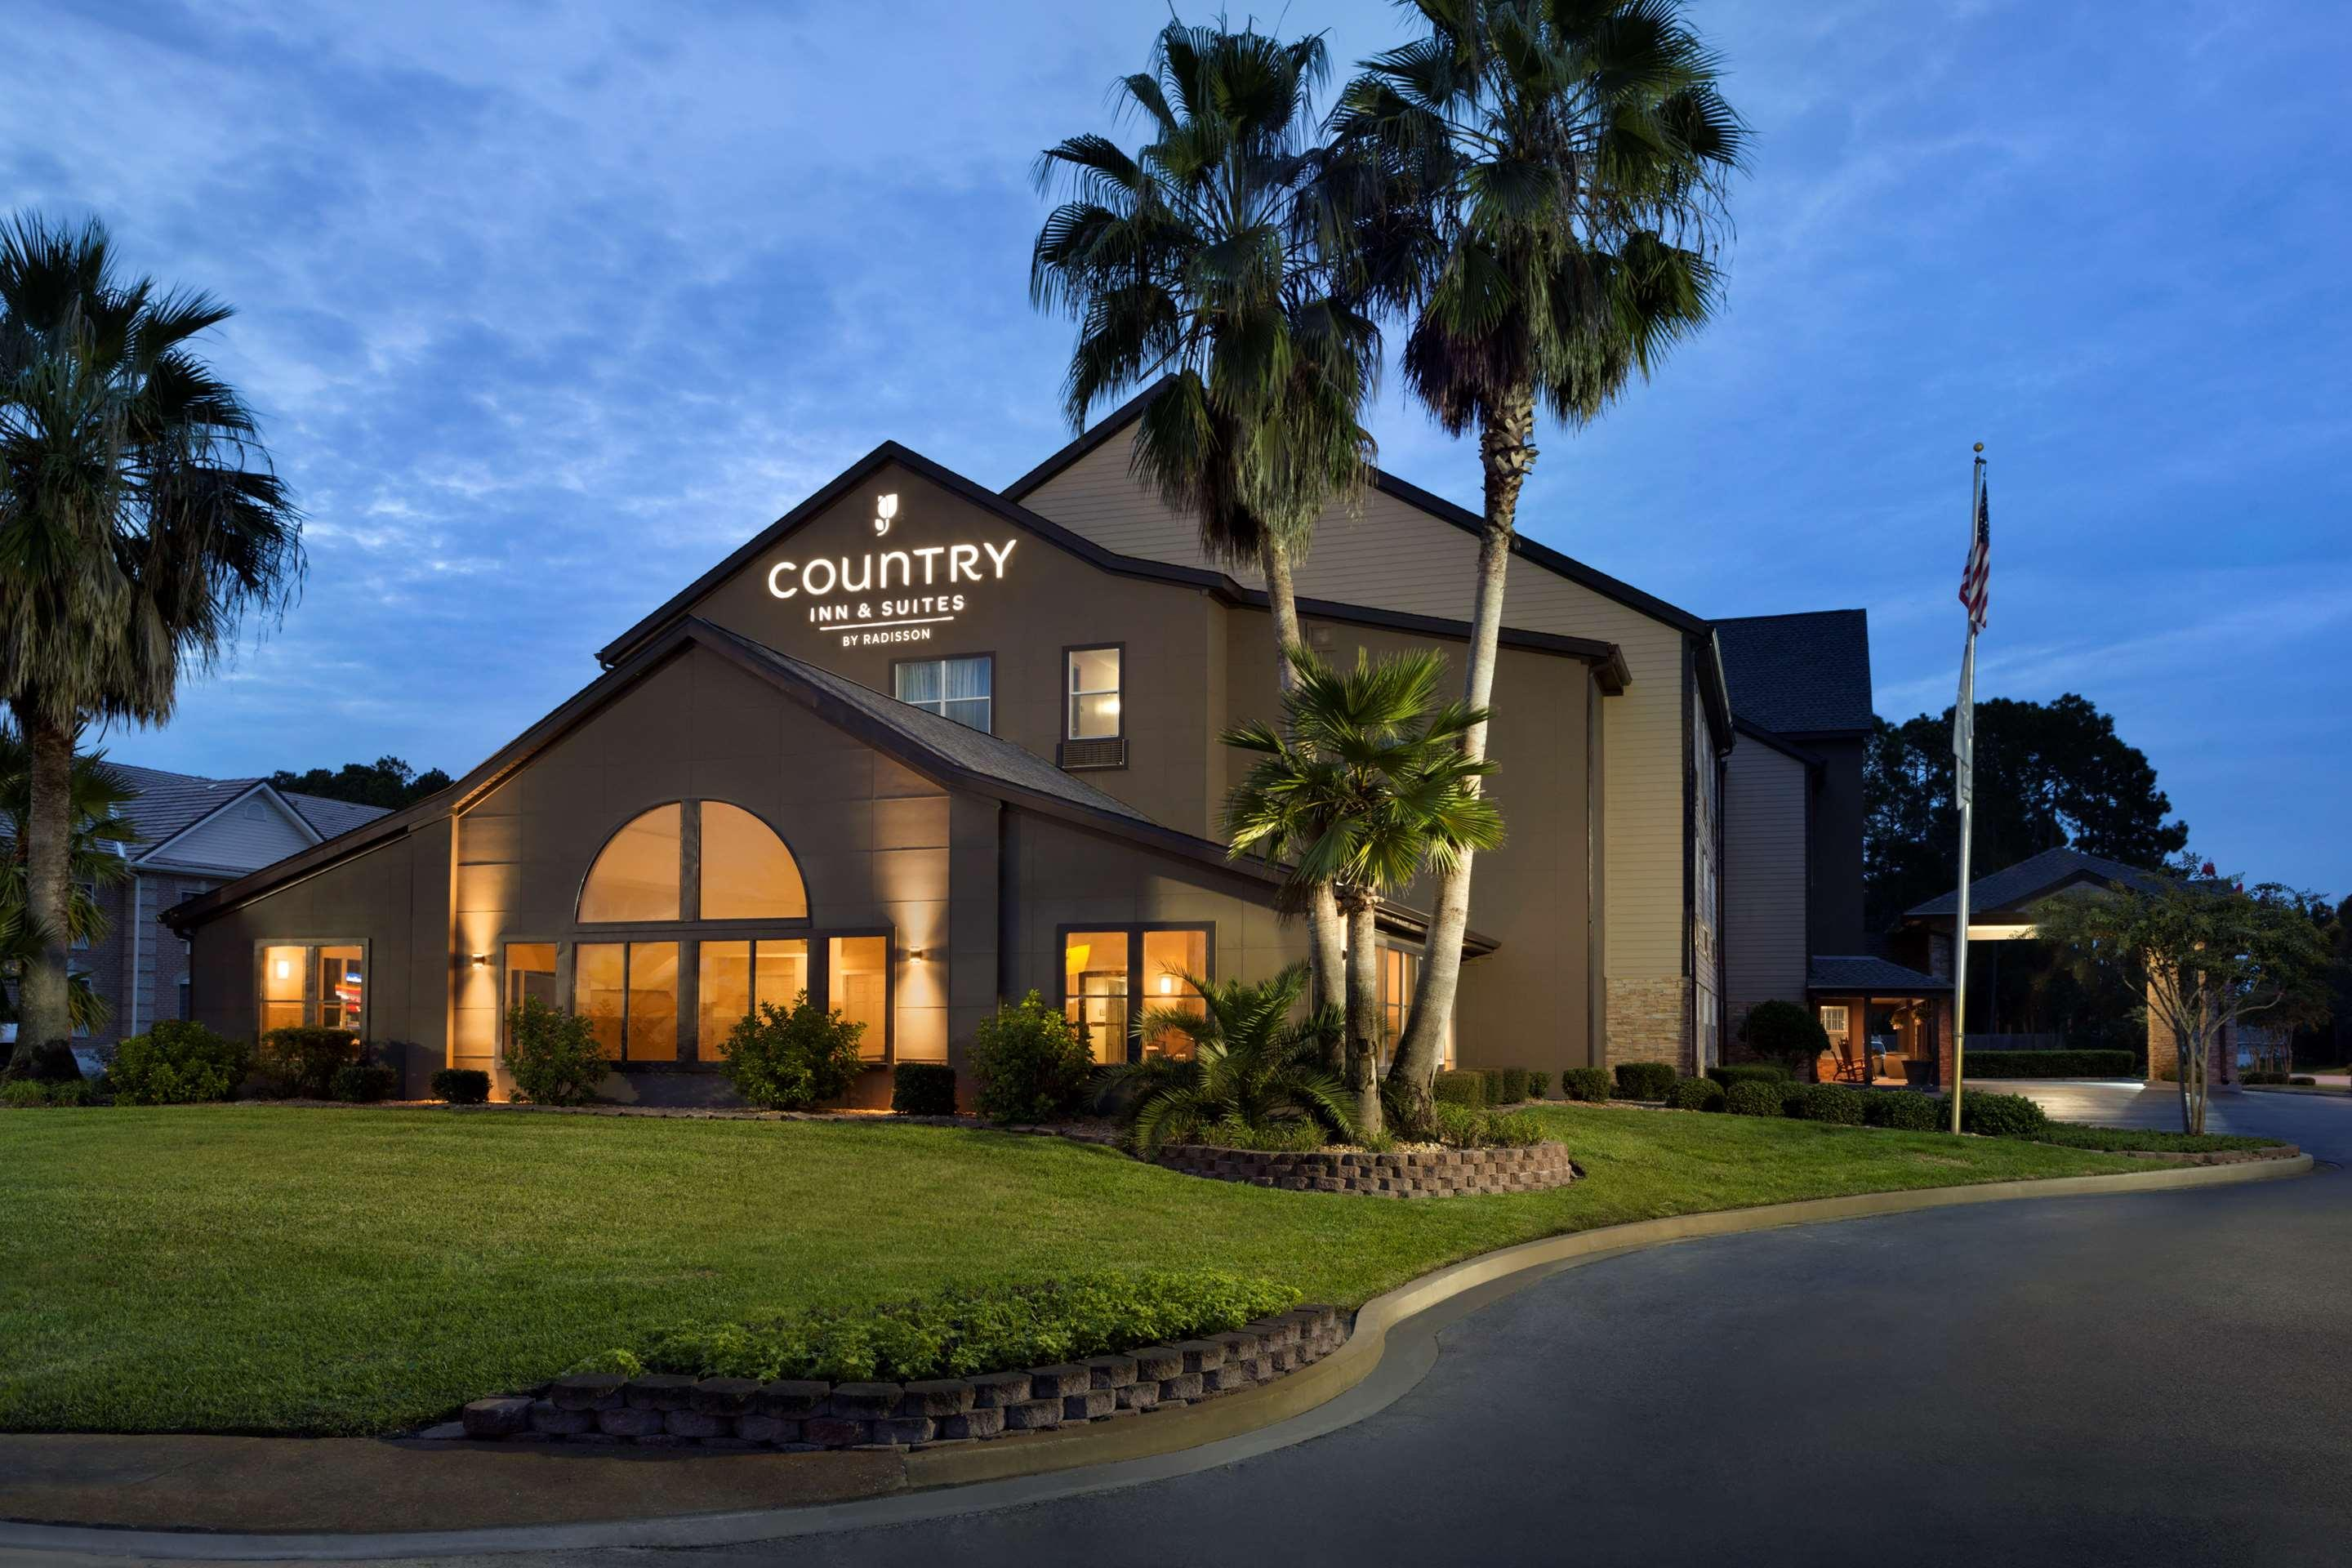 Country Inn & Suites by Radisson, Kingsland, GA